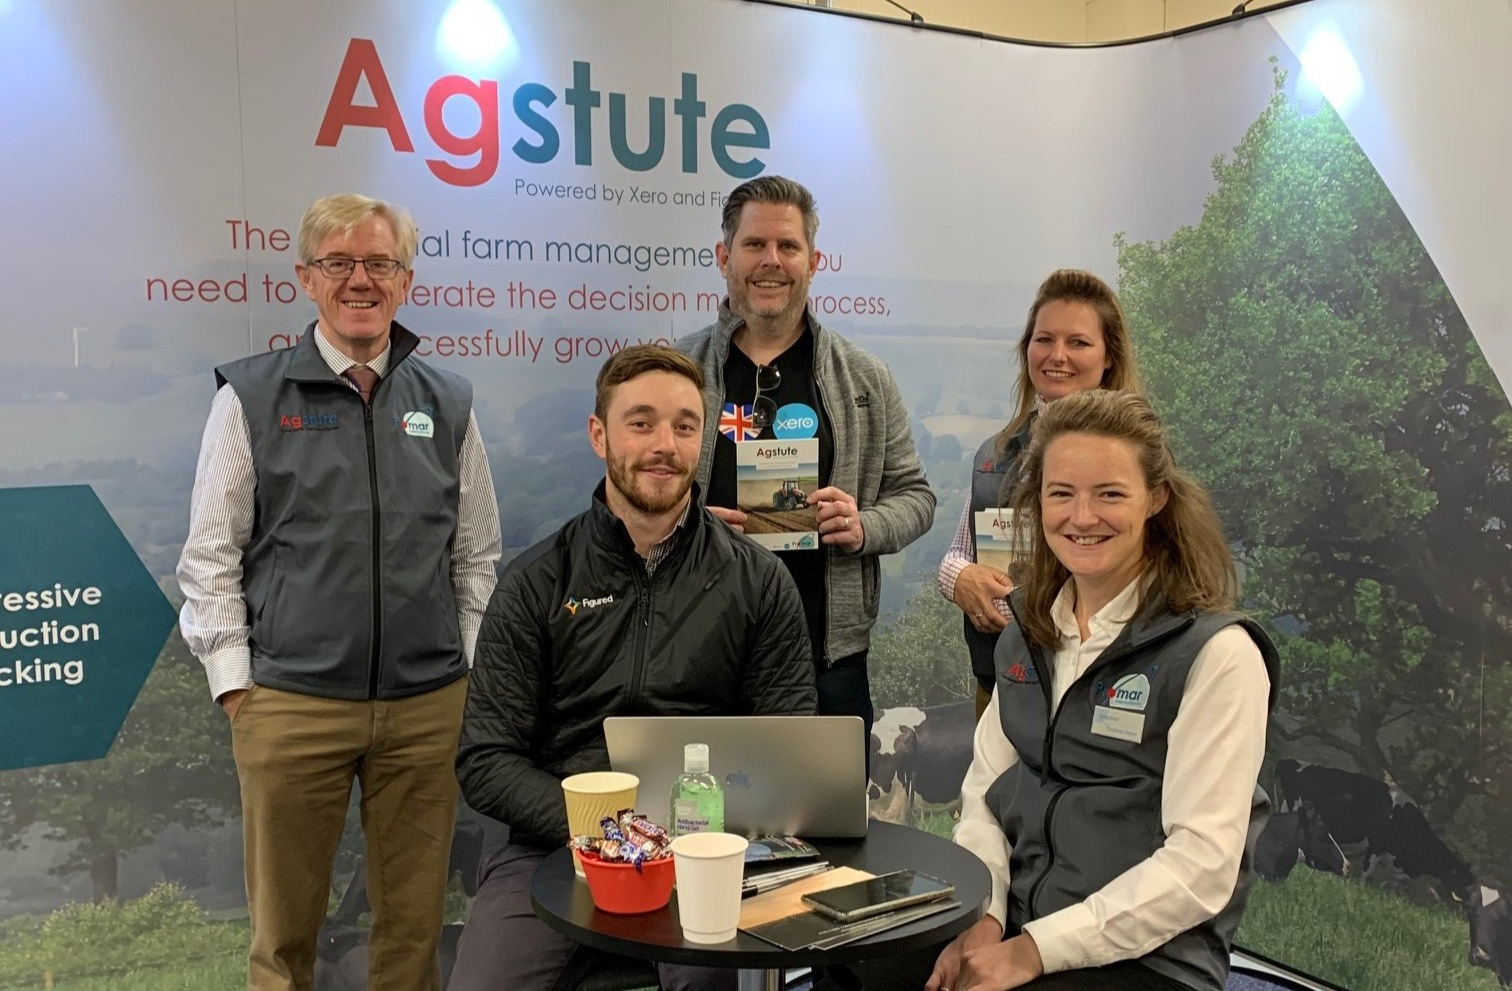 Promar unveils Agstute, powered by Xero and Figured in UK